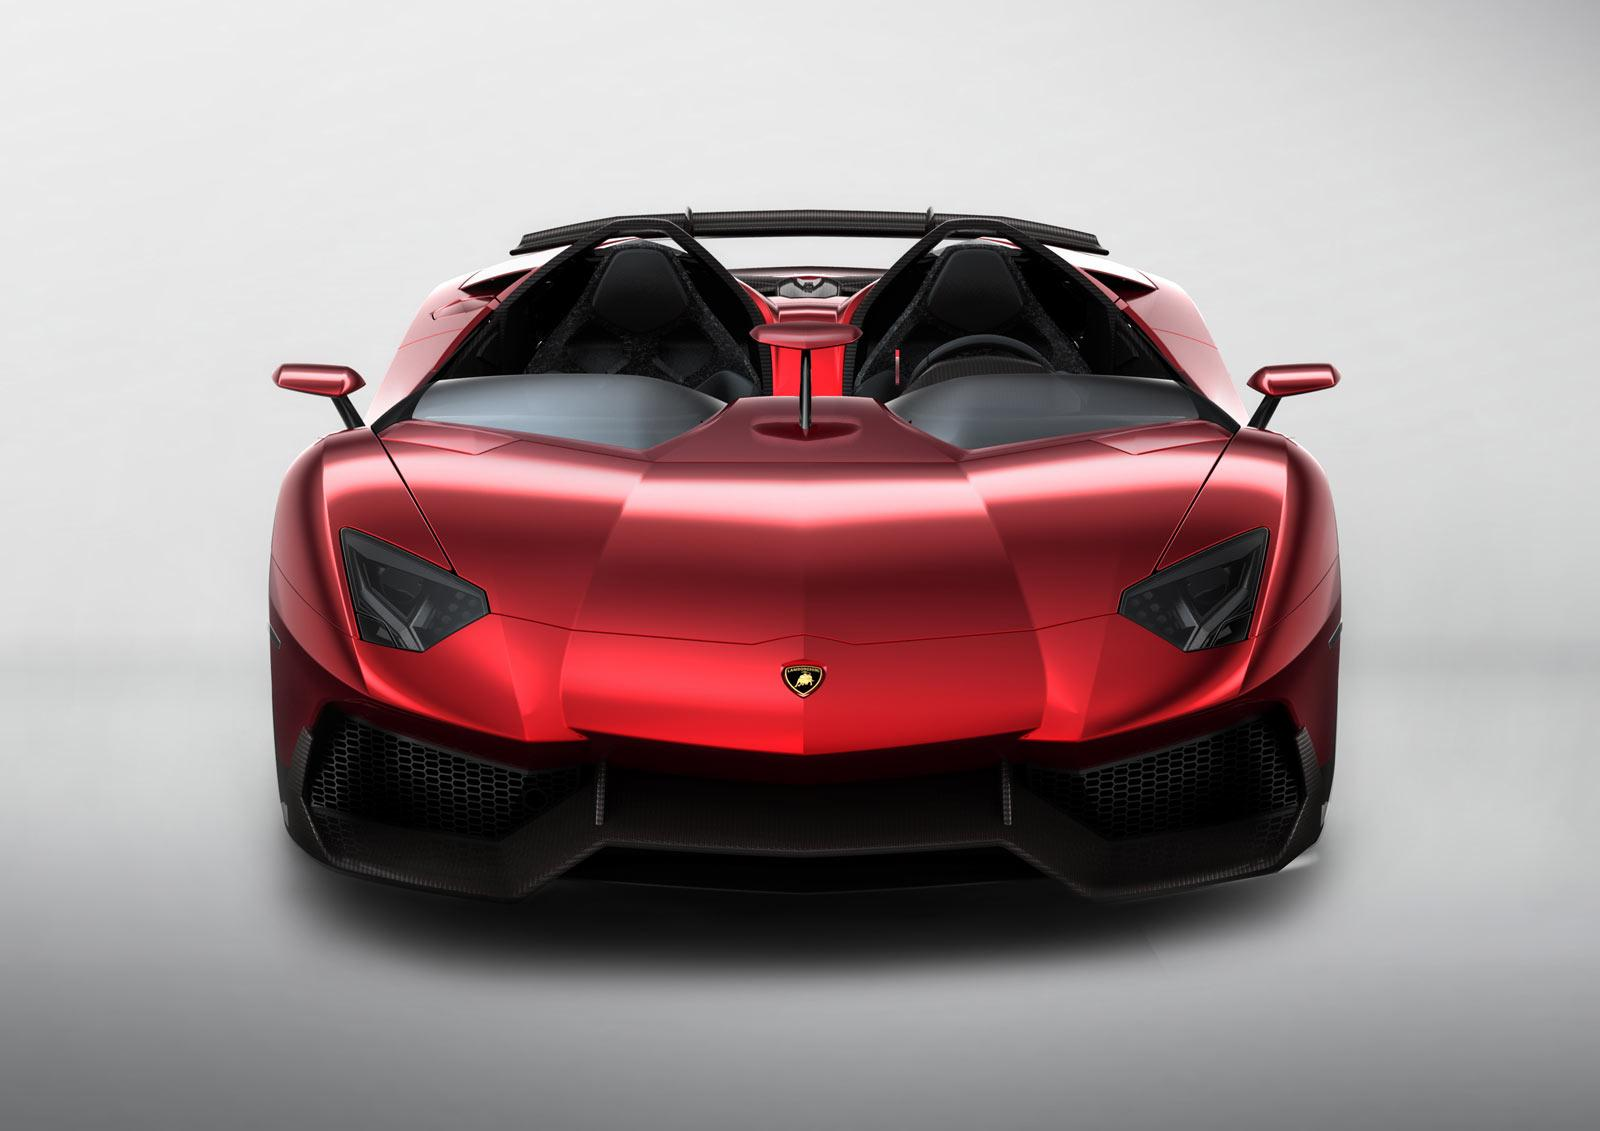 Lamborghini Aventador J - Car Body Design